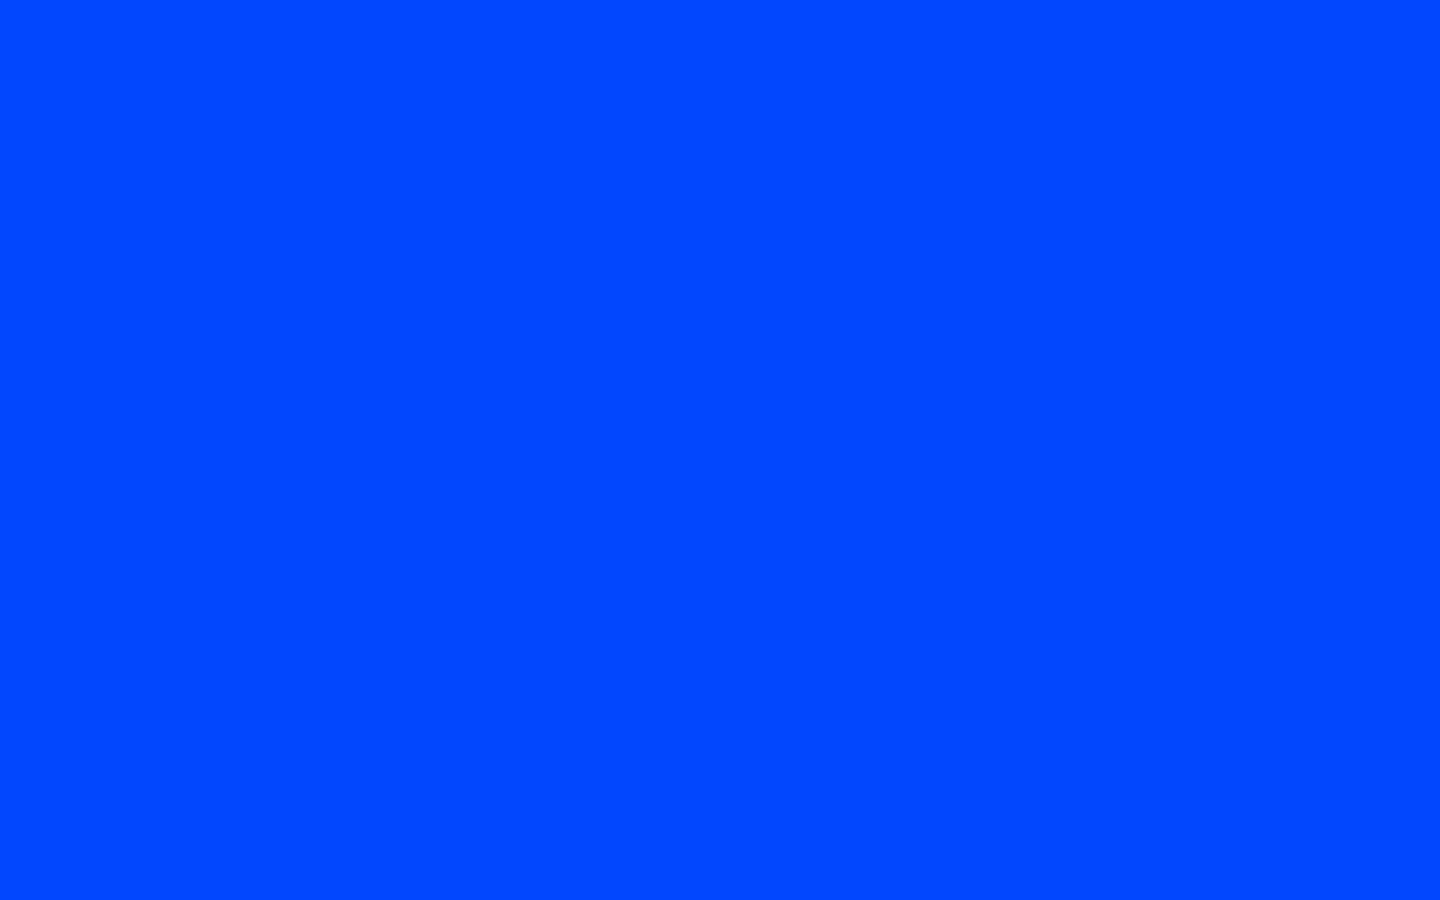 1440x900 Blue RYB Solid Color Background